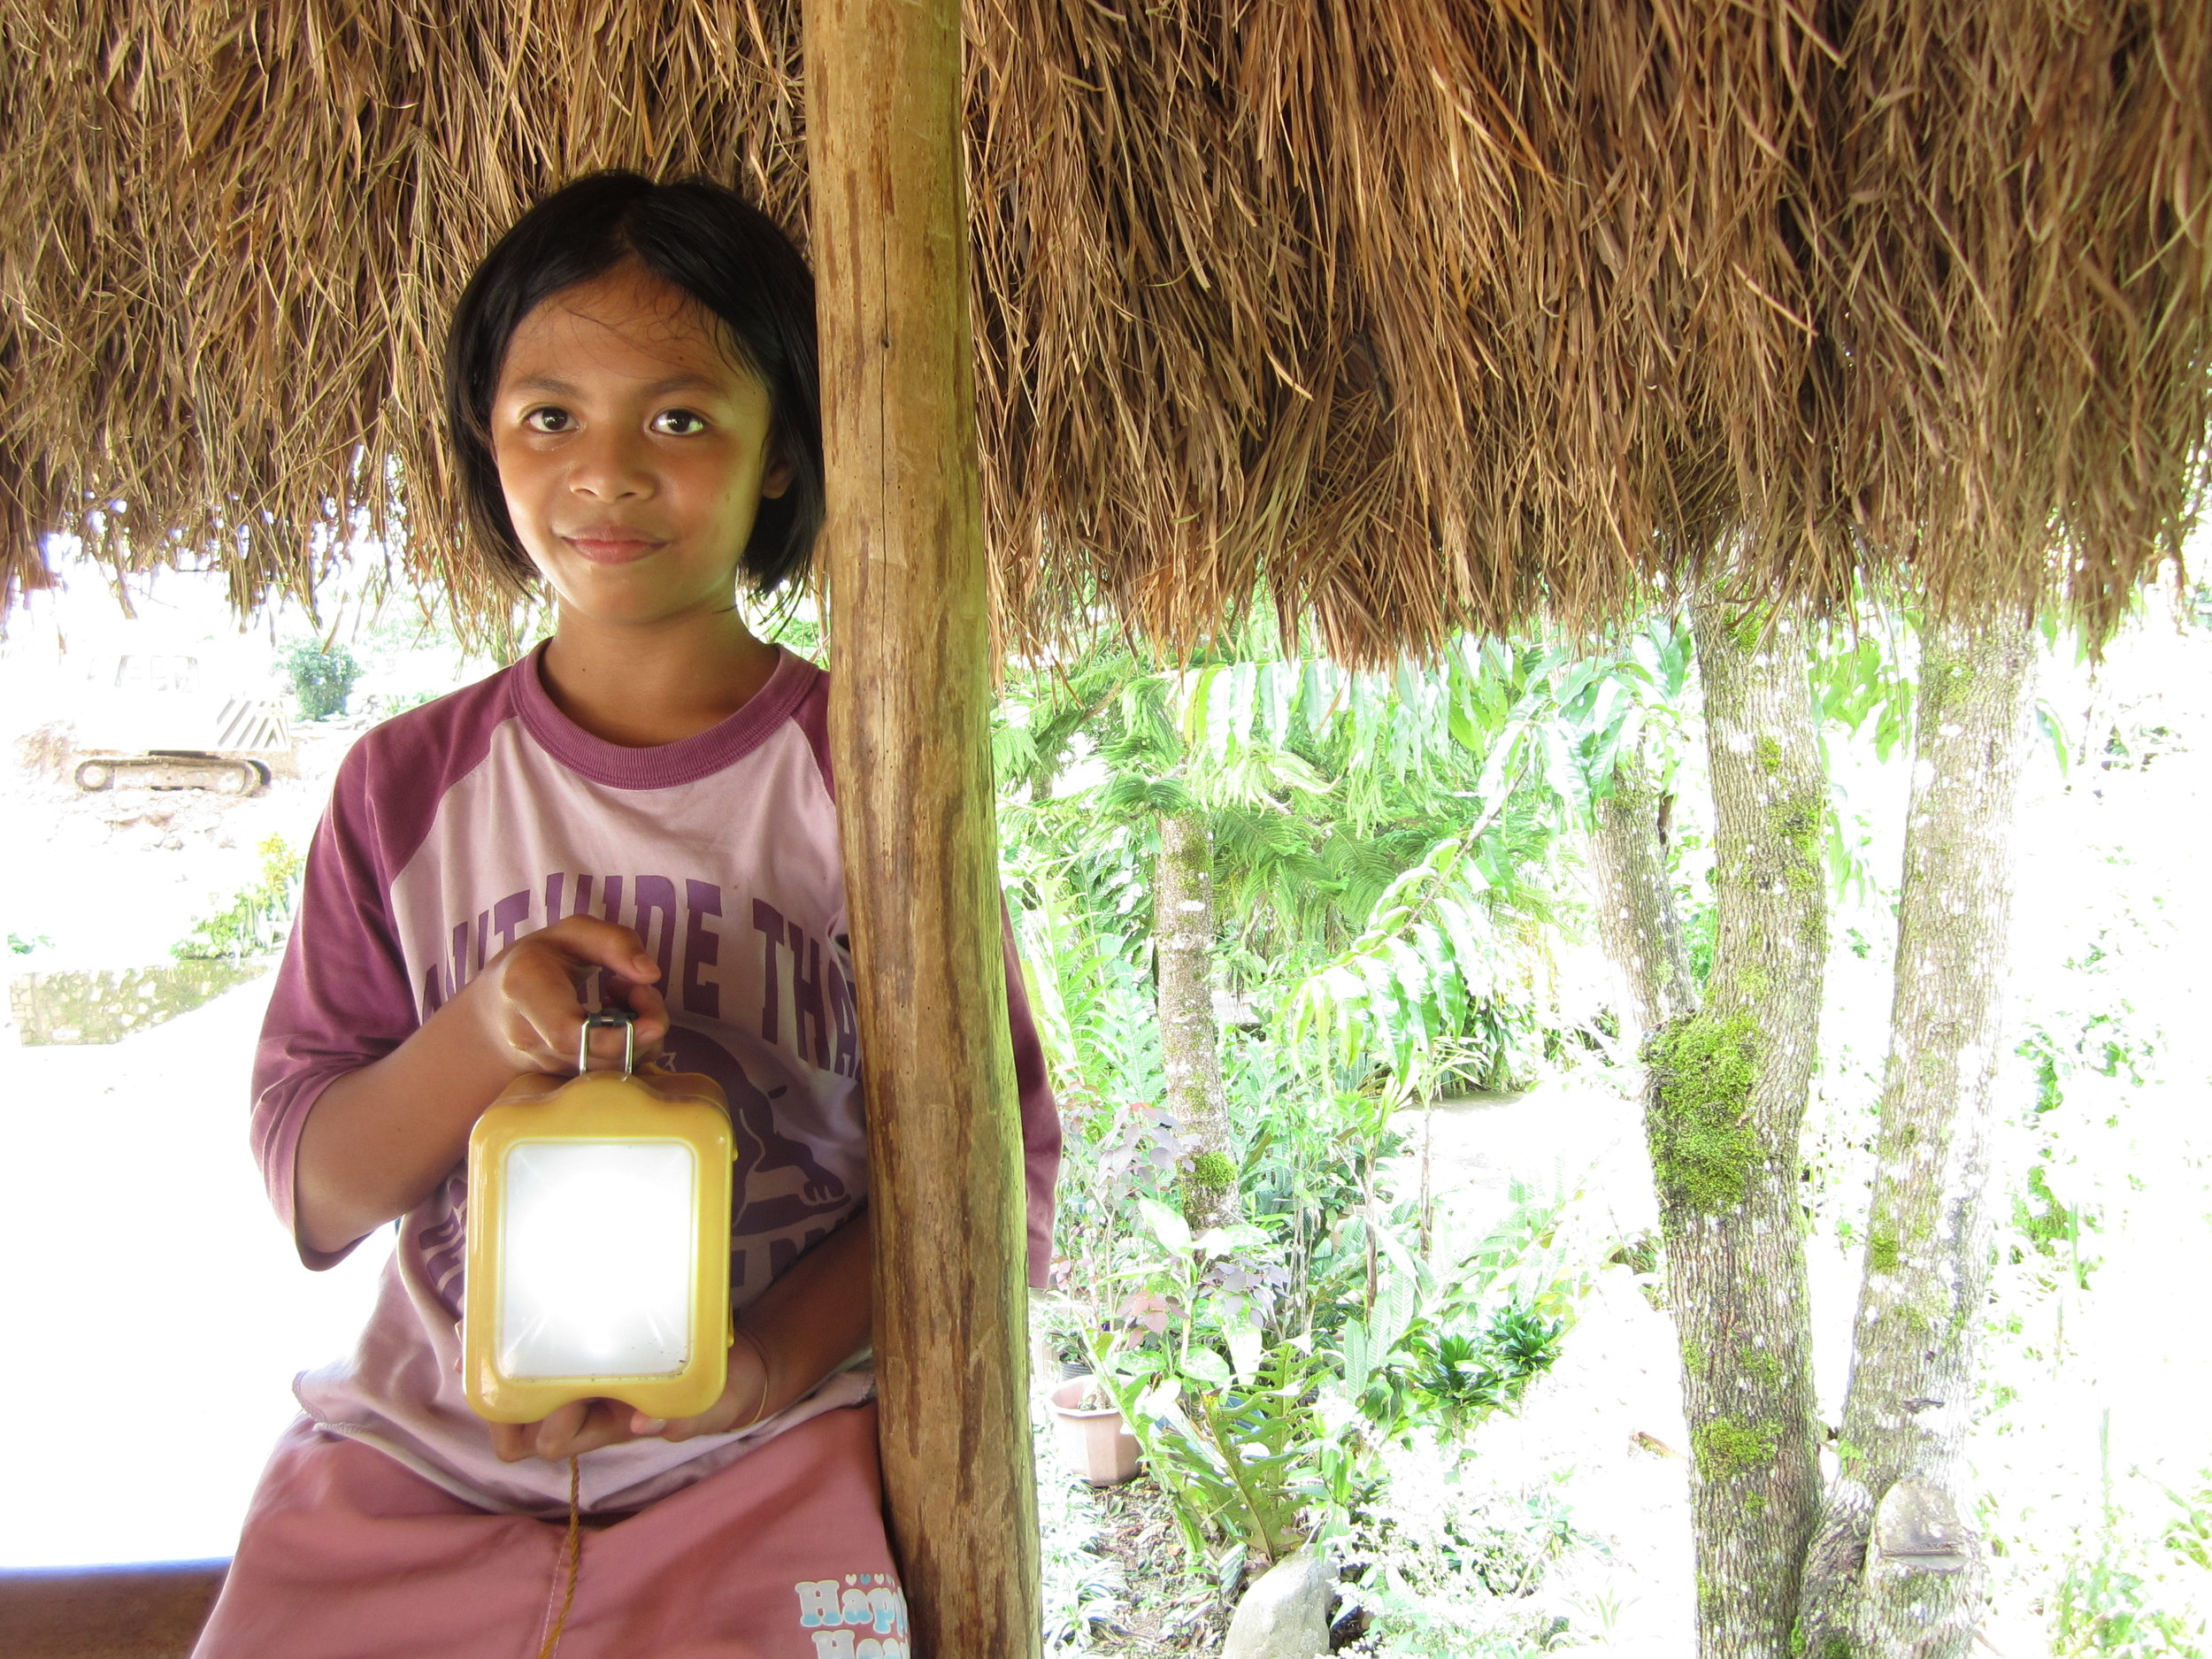 Baguio Child w Lamp 2.JPG